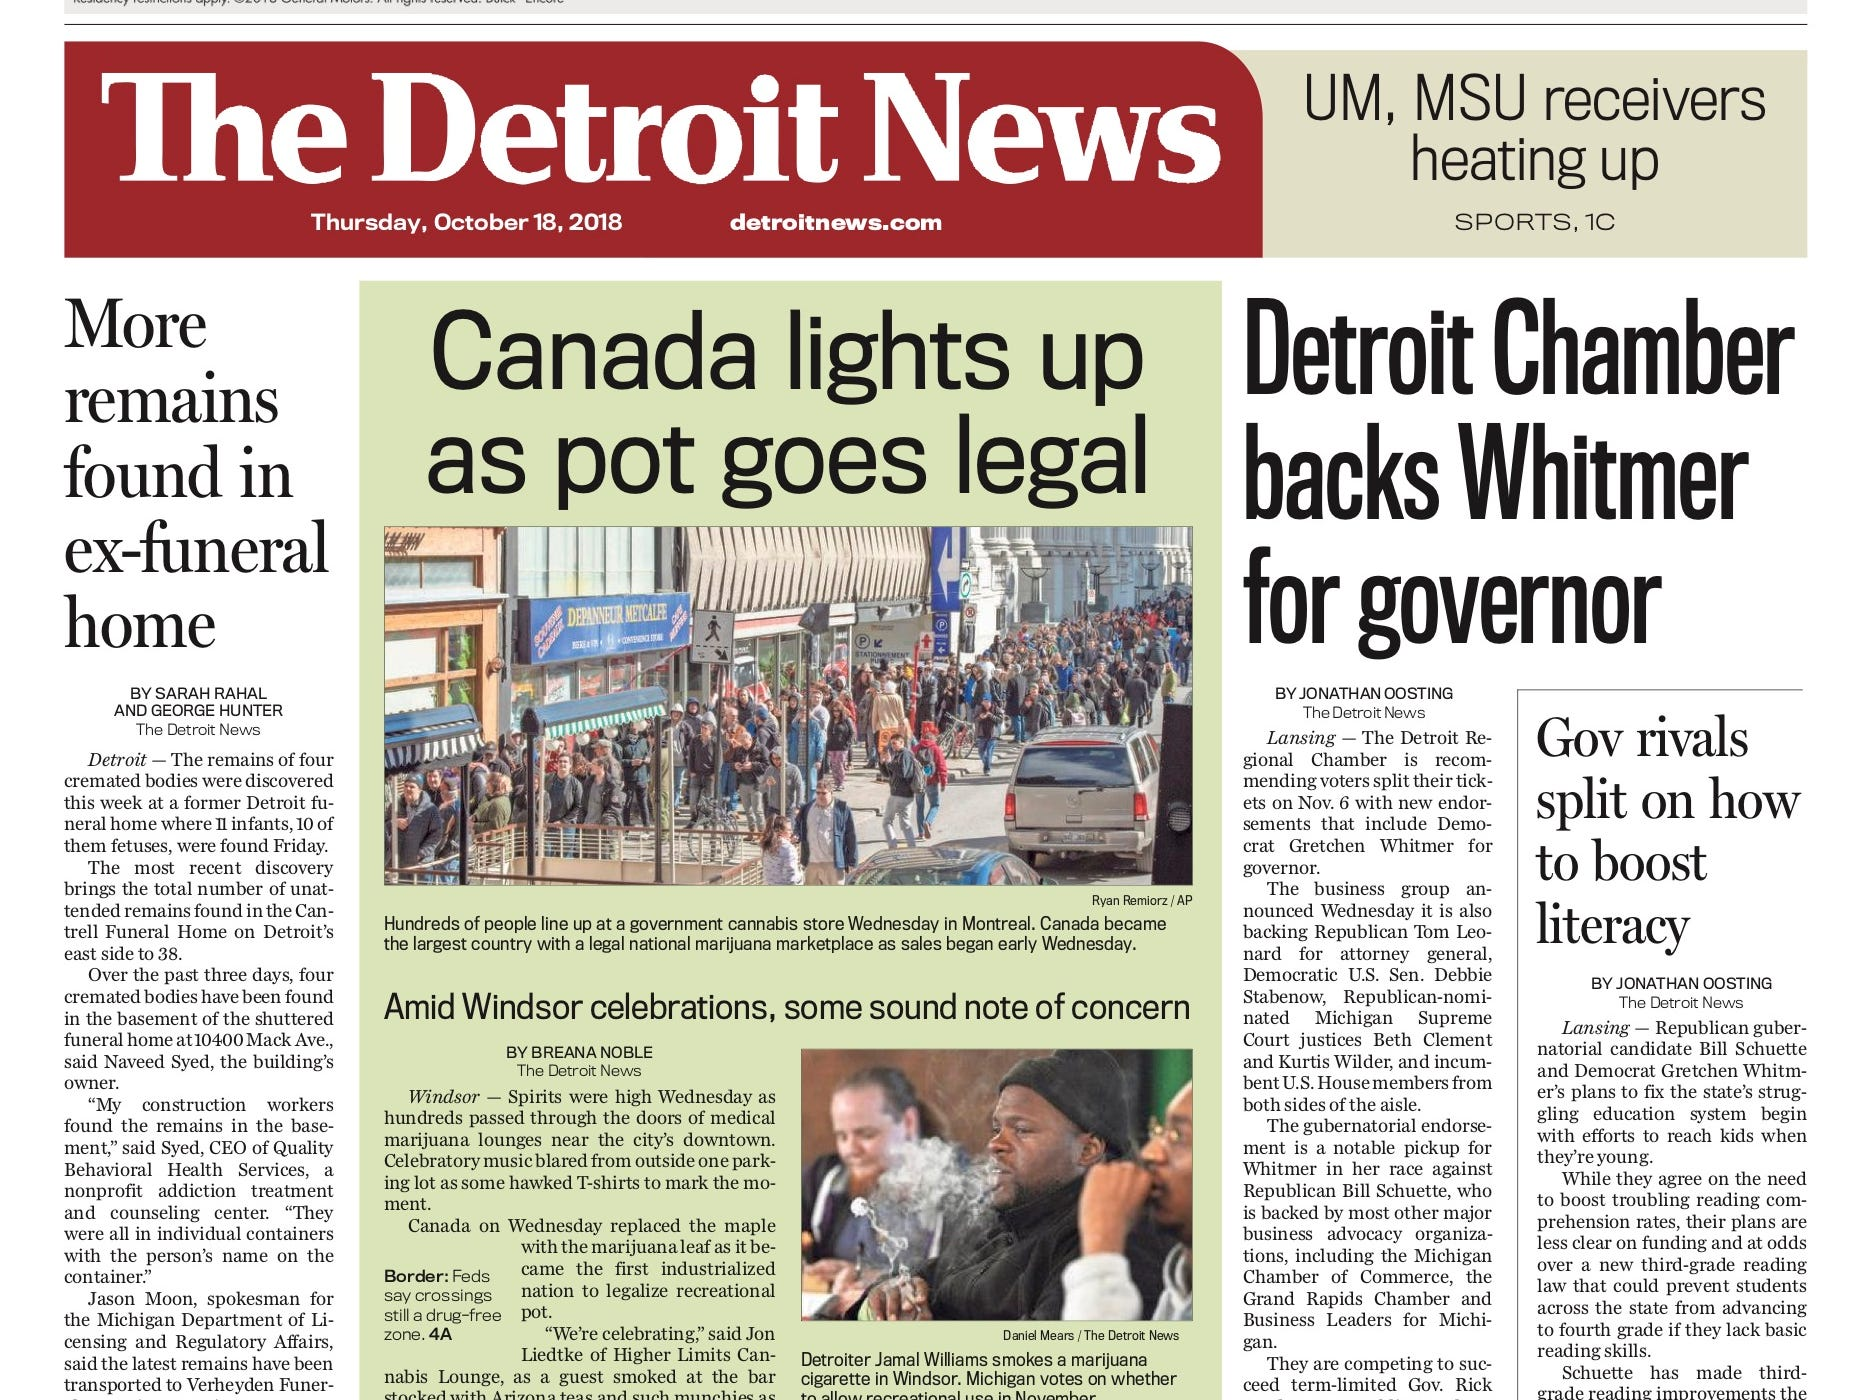 The front page of the Detroit News on October 18, 2018.